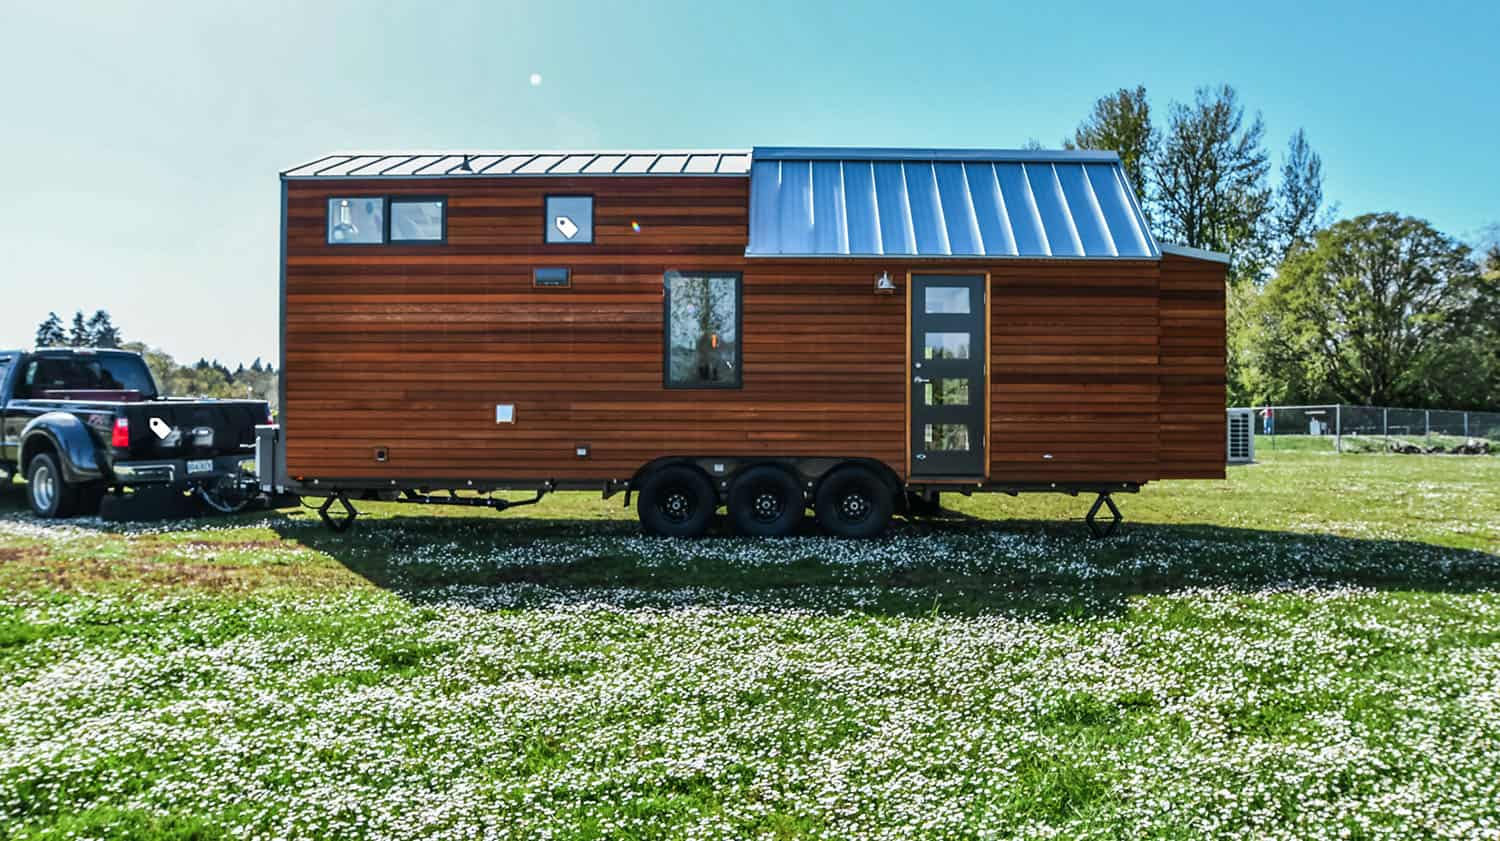 This fabulous off-grid tiny home on wheels can be taken anywhere